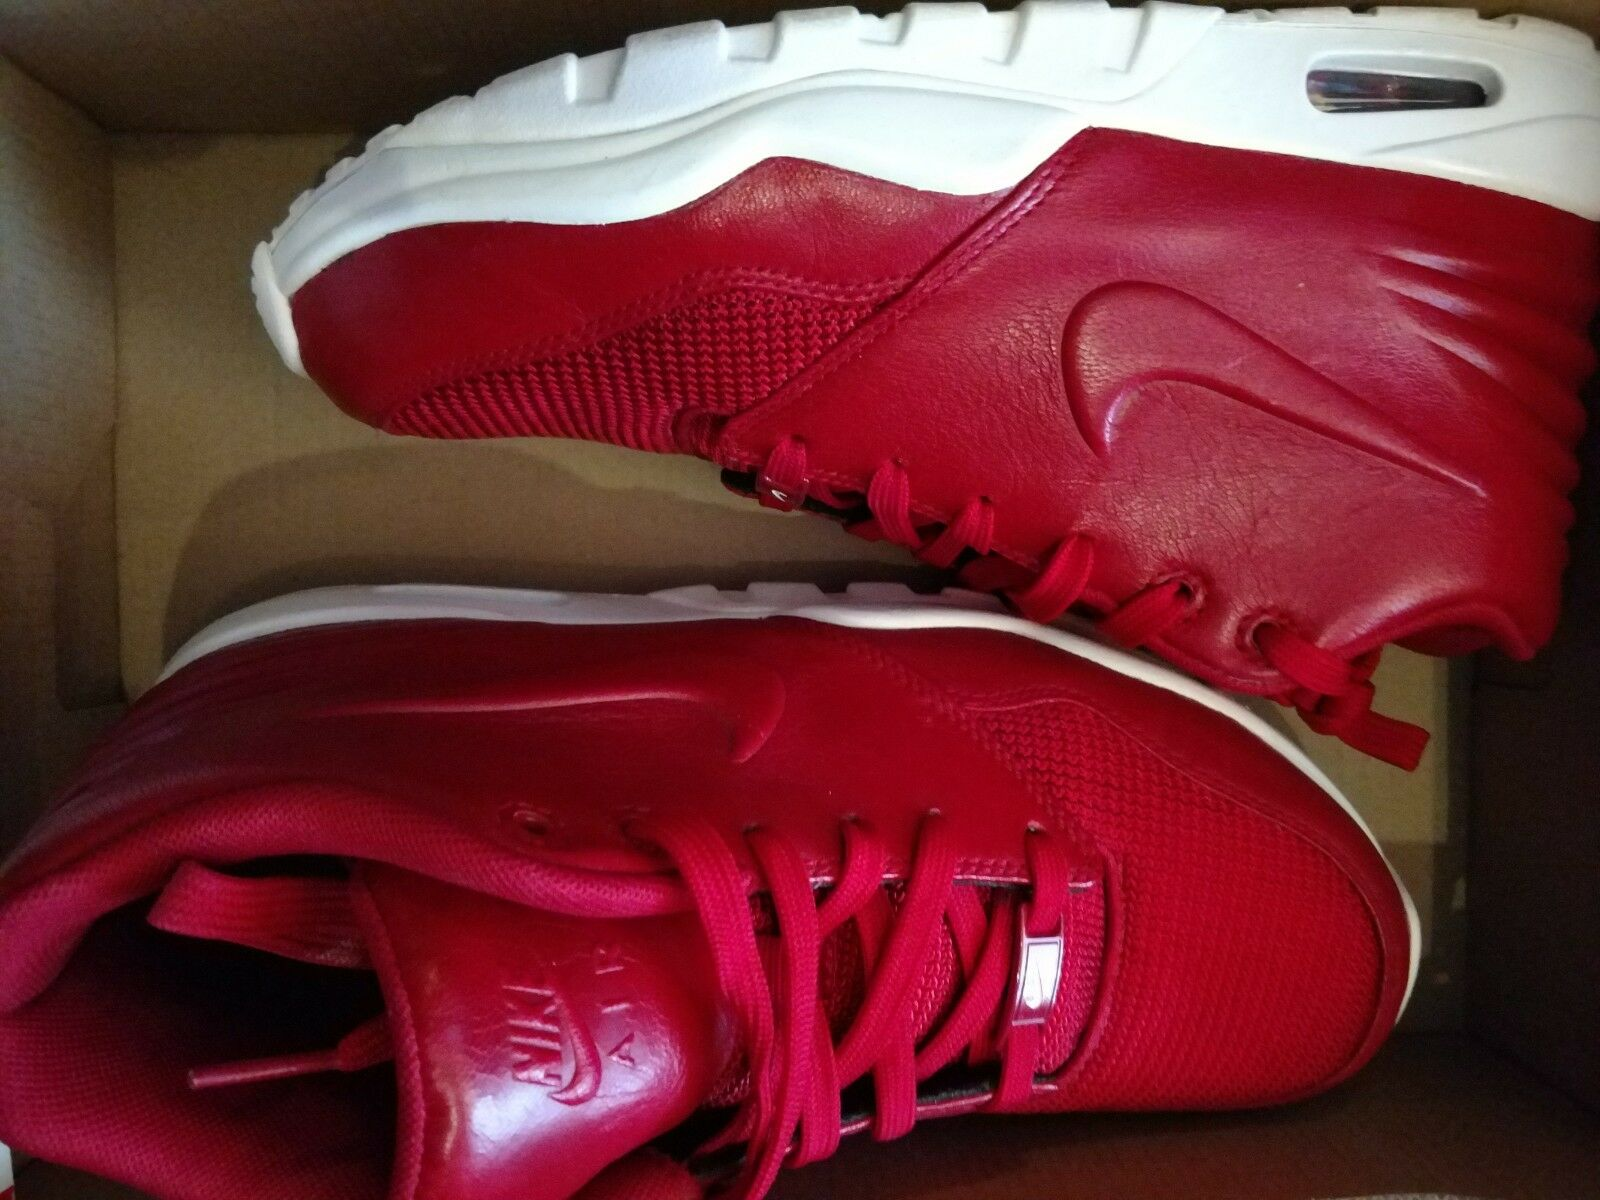 Nike Air Entertainer Price reduction Gym Red Athletic Shoes Men Comfortable Seasonal price cuts, discount benefits